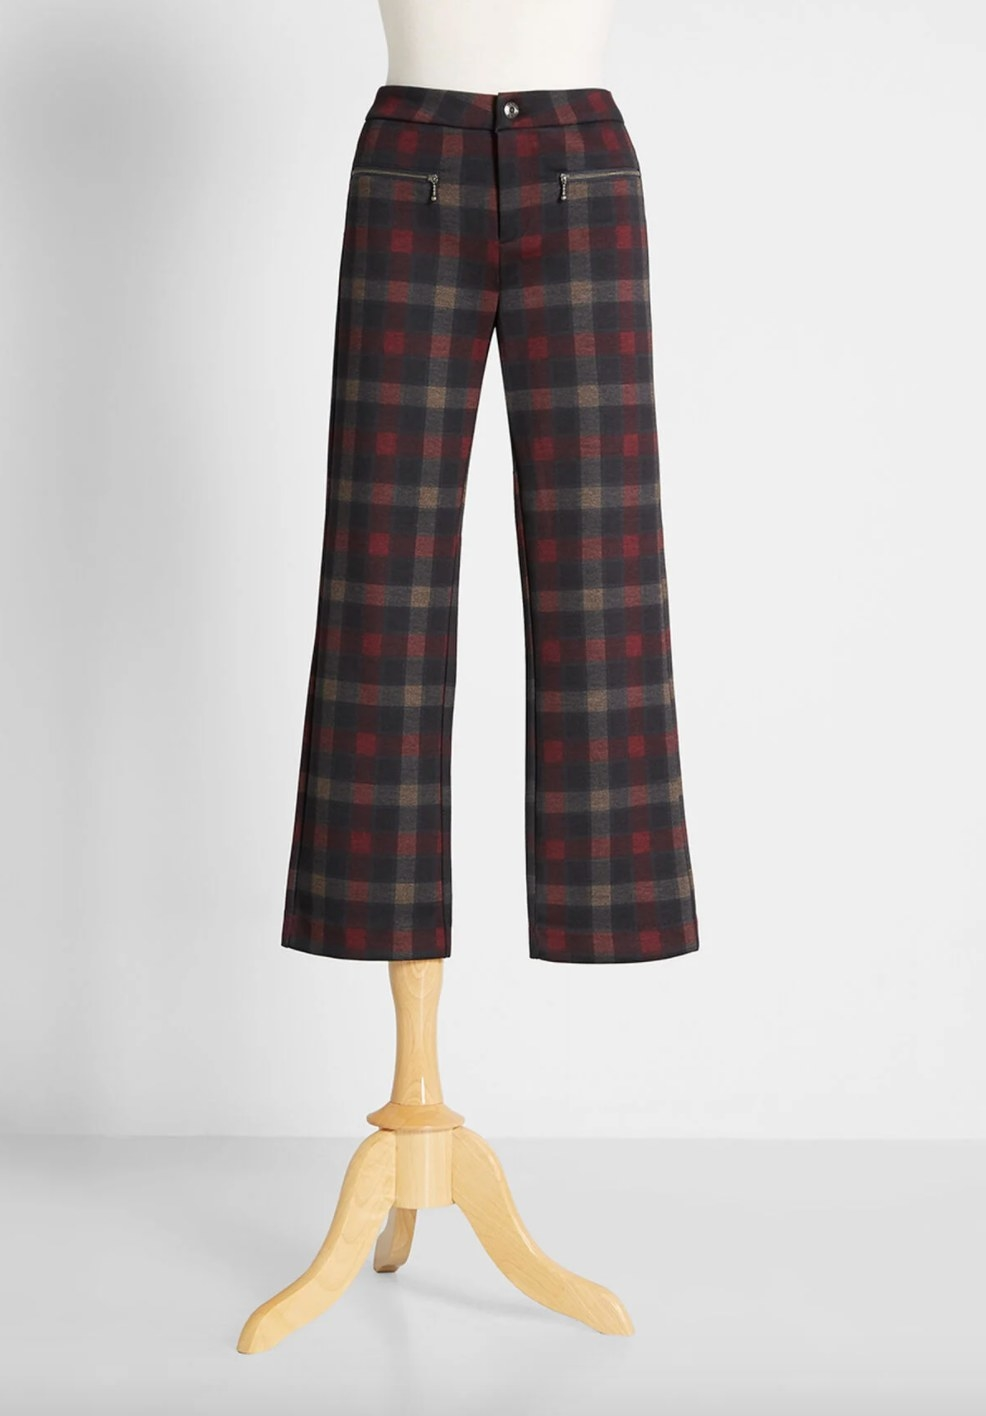 The pair of plaid pants